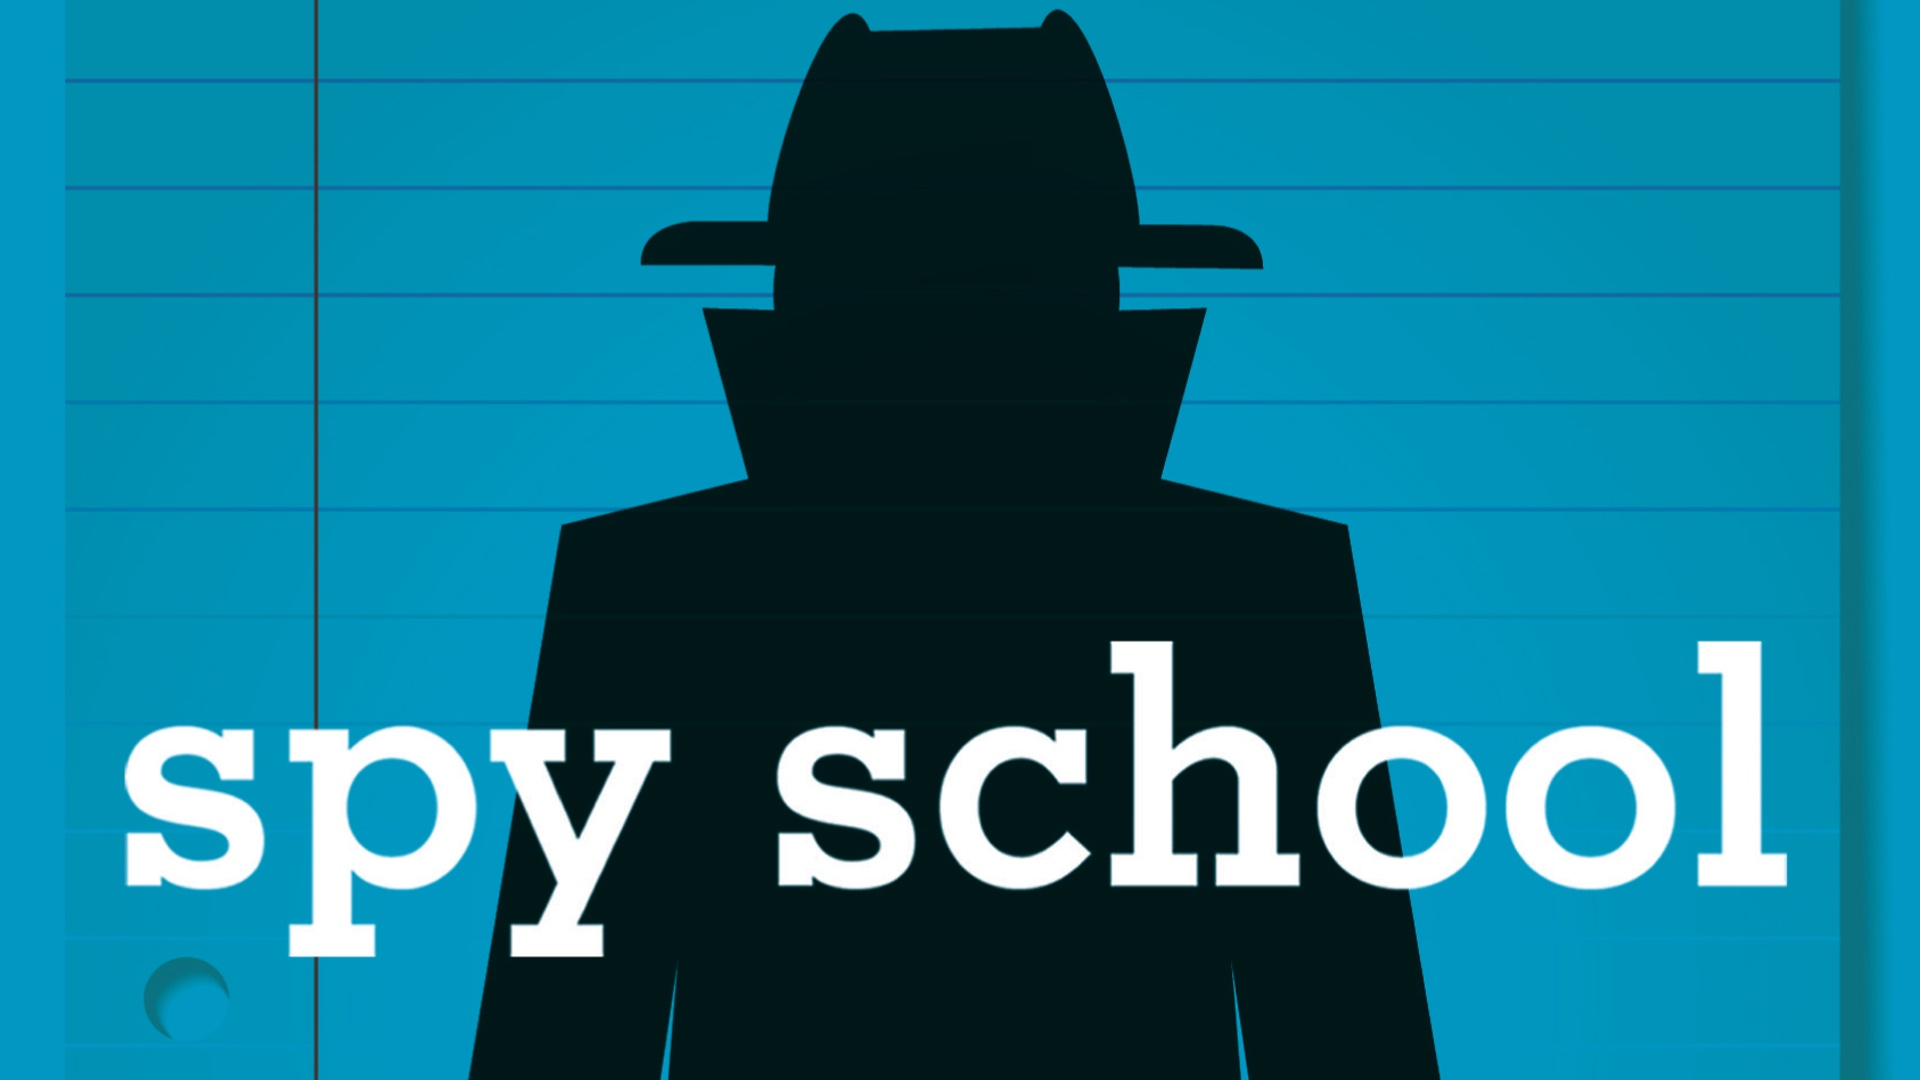 The Spy School Book Series Is Being Adapted For The Big Screen